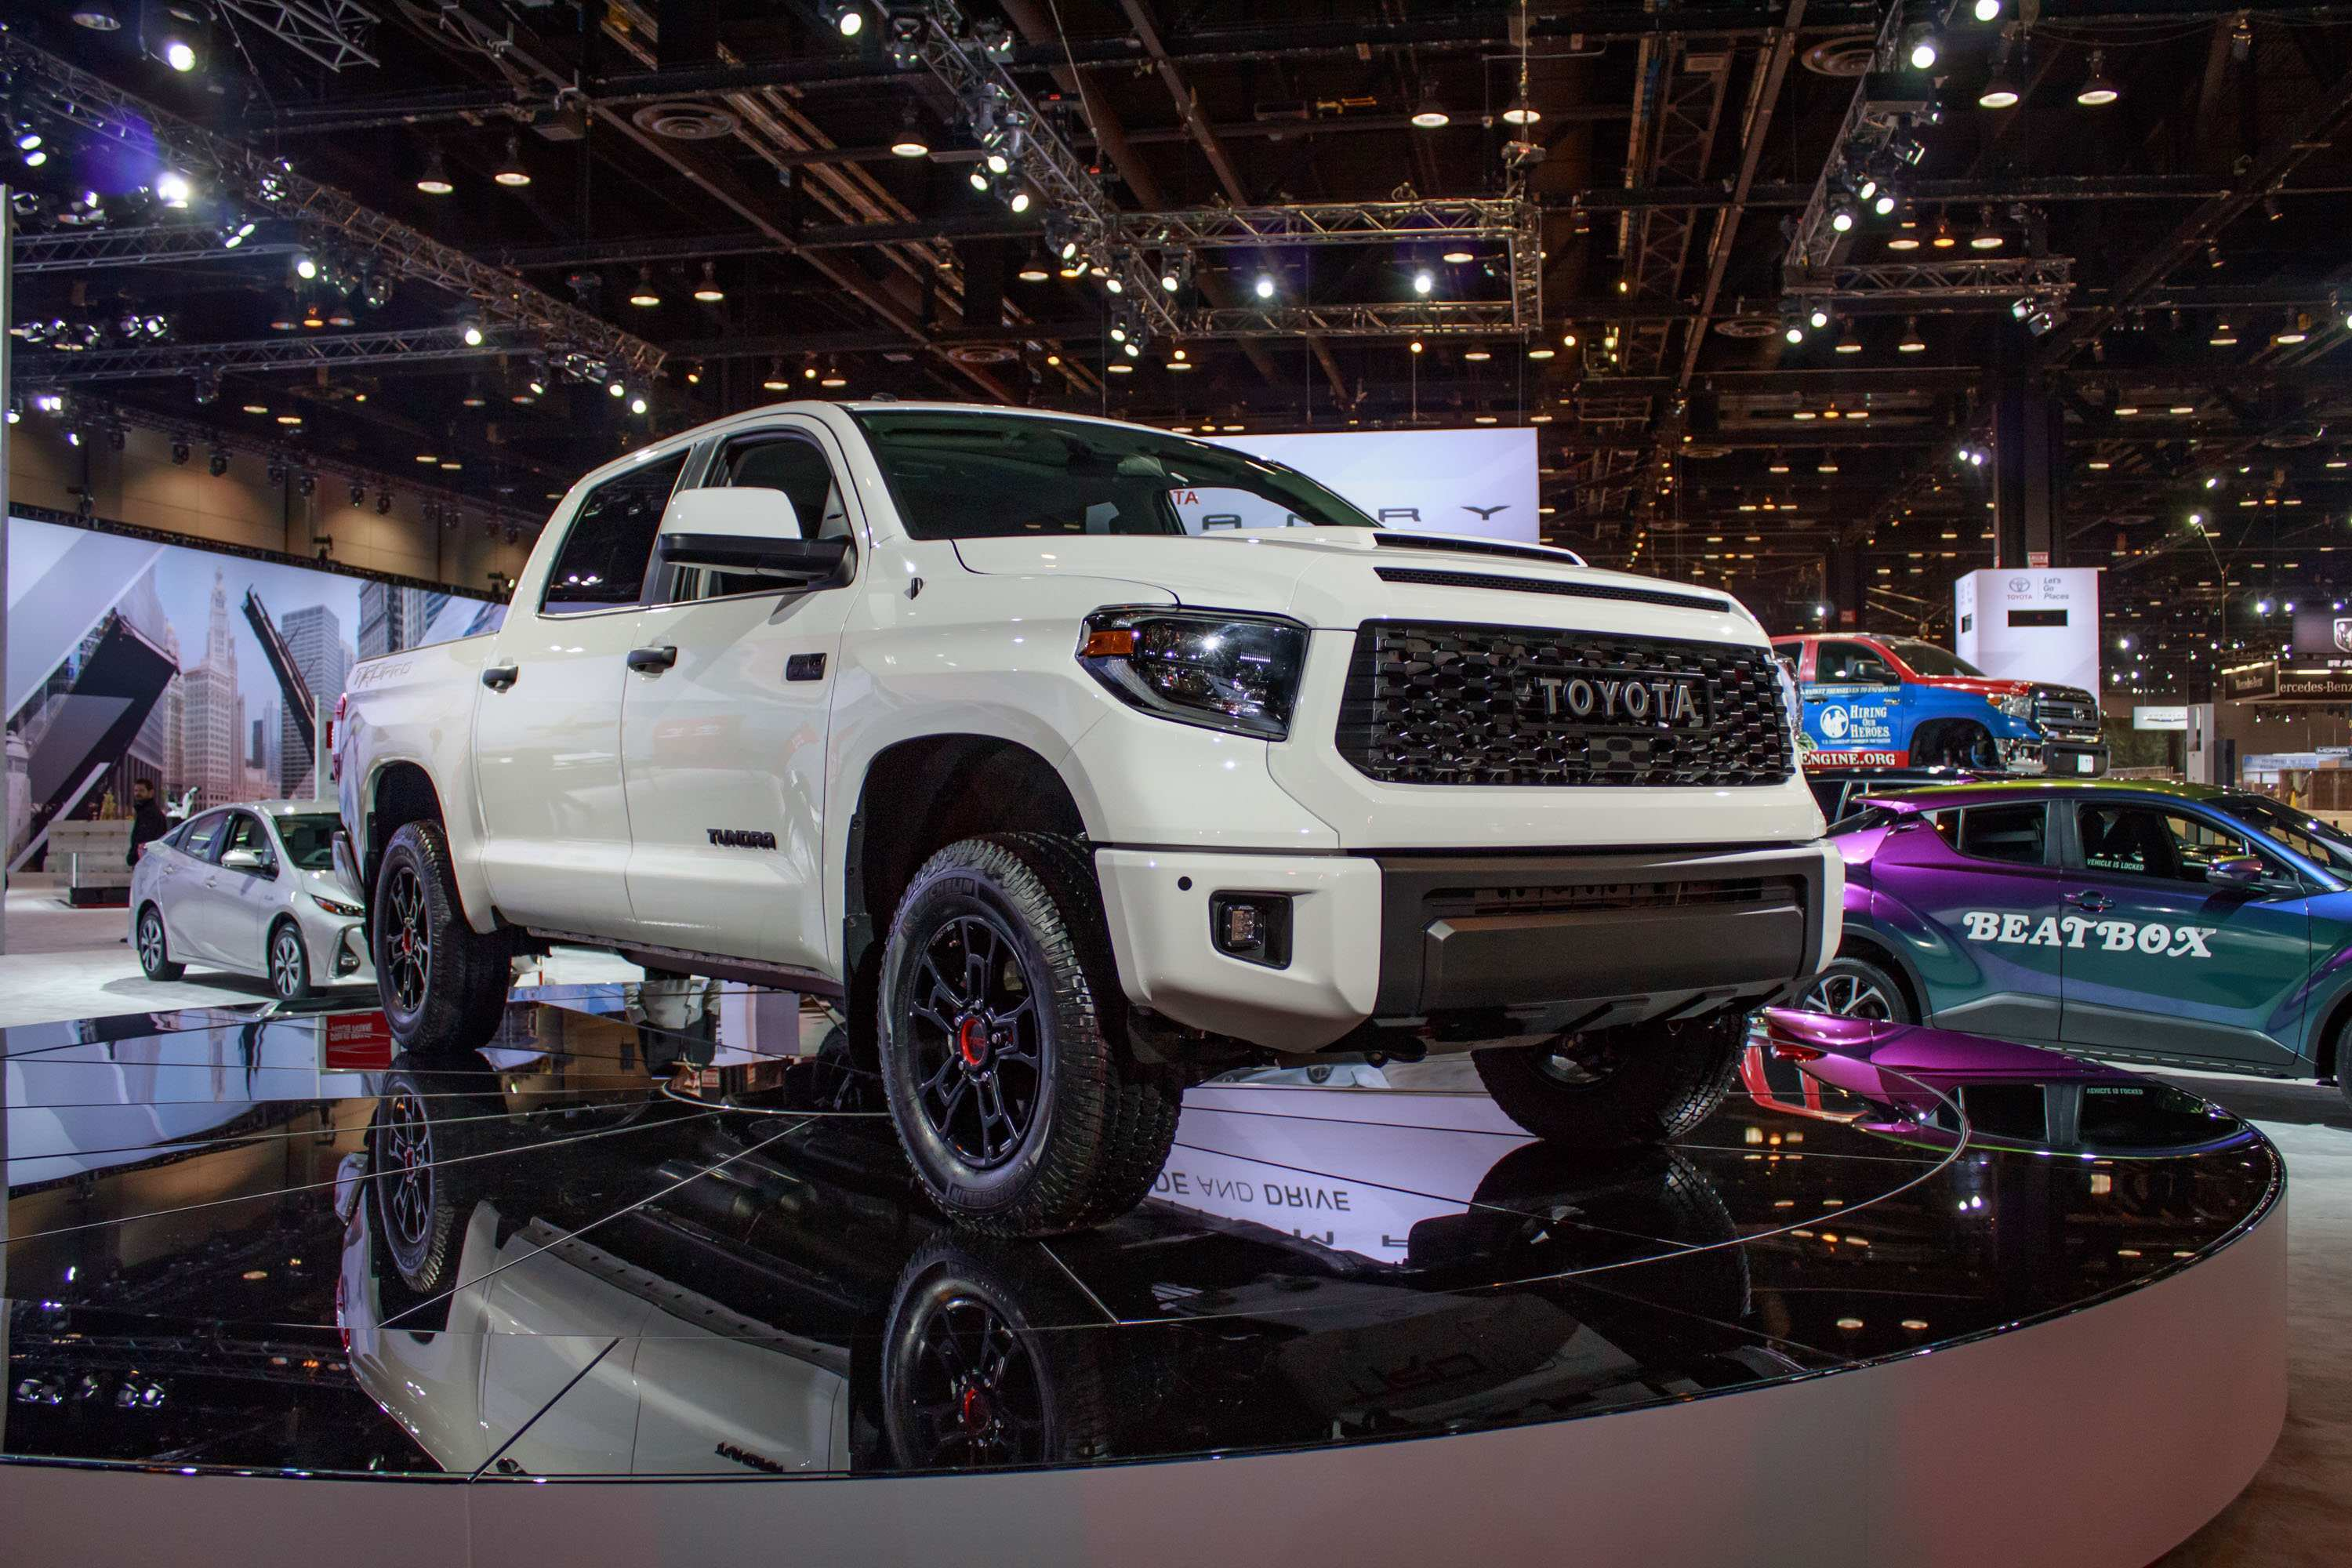 72 Best Review Toyota Tundra Trd Pro 2019 Prices with Toyota Tundra Trd Pro 2019